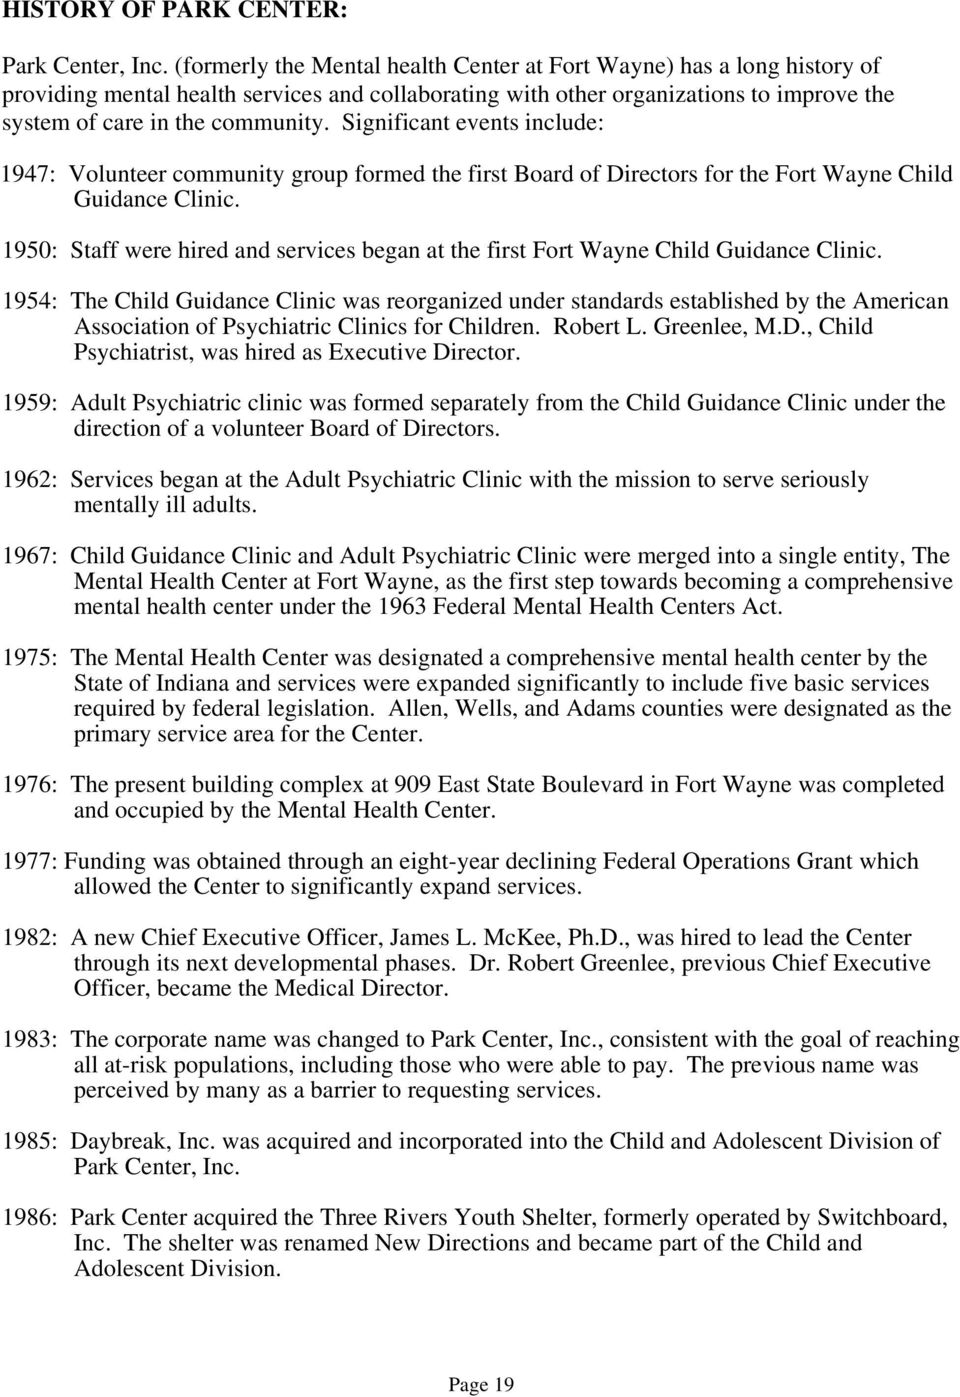 Significant events include: 1947: Volunteer community group formed the first Board of Directors for the Fort Wayne Child Guidance Clinic.